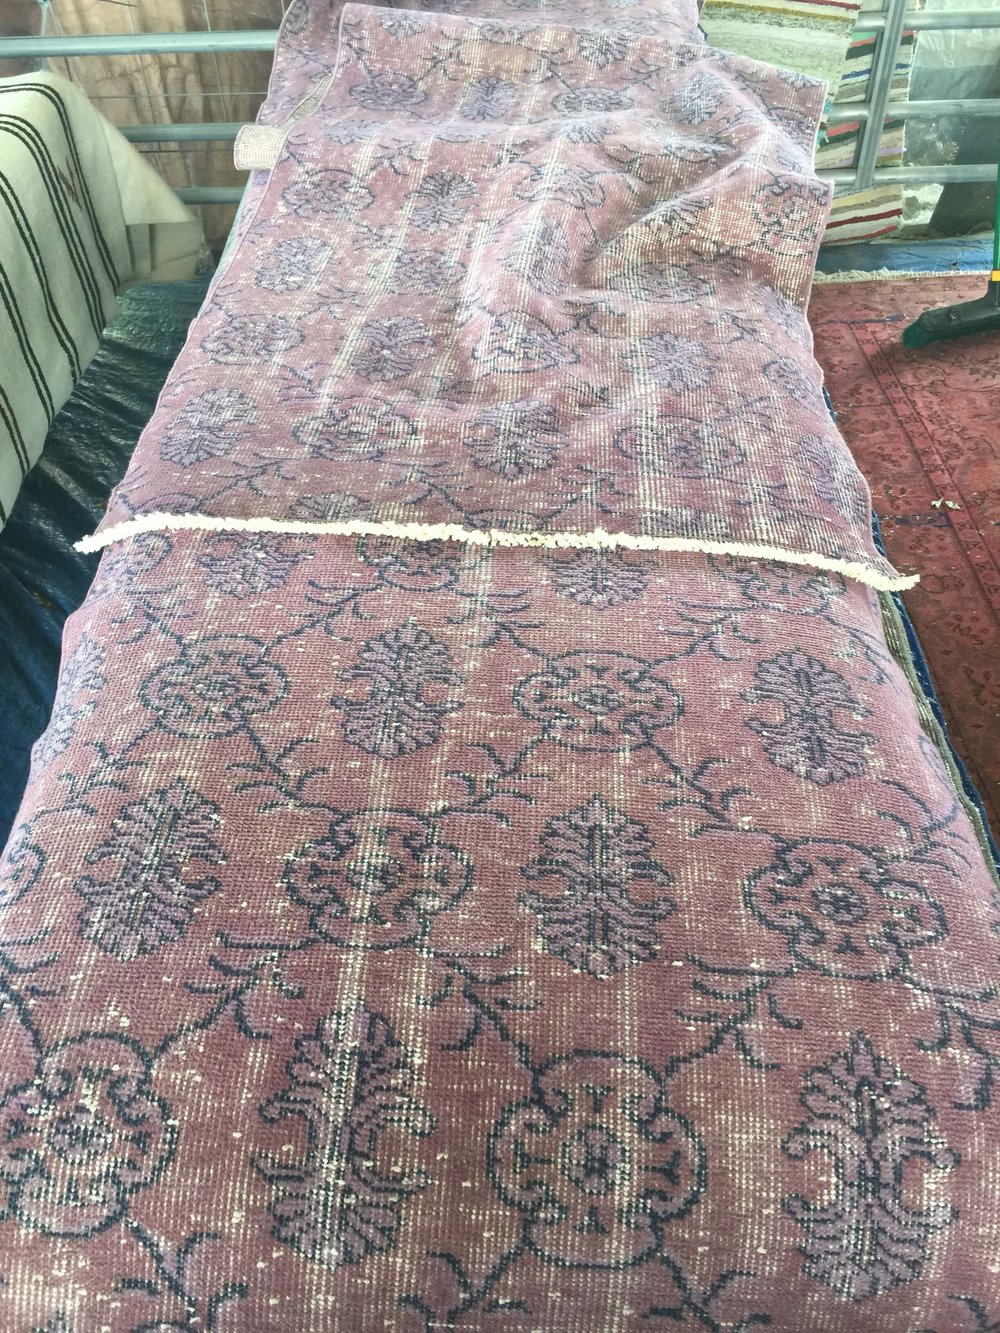 Purple antiqued runner rug at Roundtop, TX #runner #rug #purplerug #roundtop